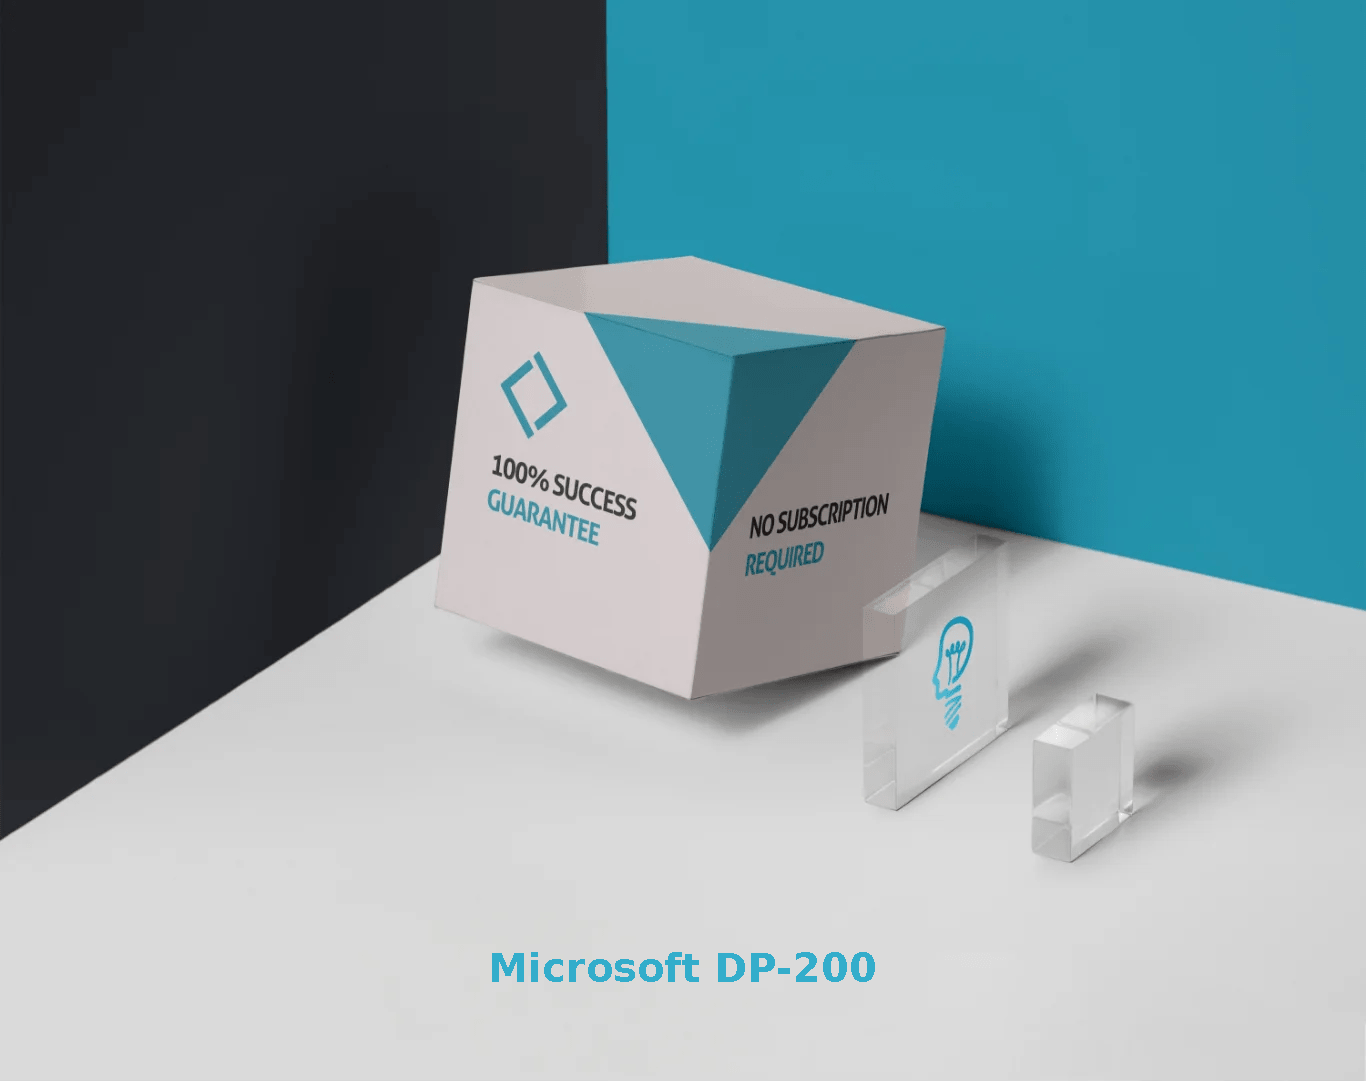 Microsoft DP-200 Exams